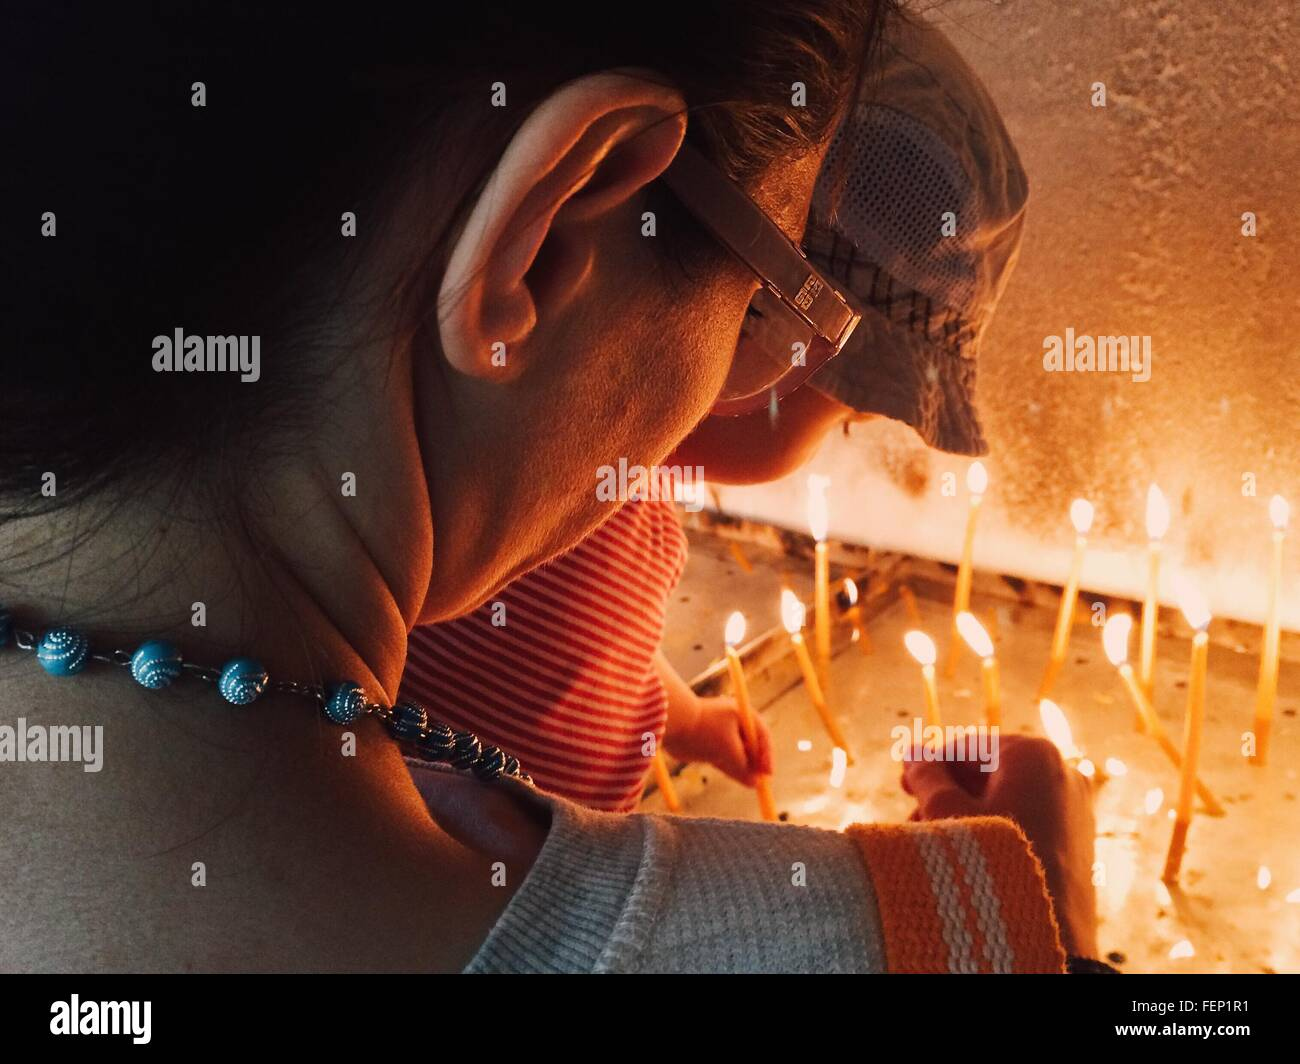 Rear View Of Mother With Child Lighting Candles In Church - Stock Image